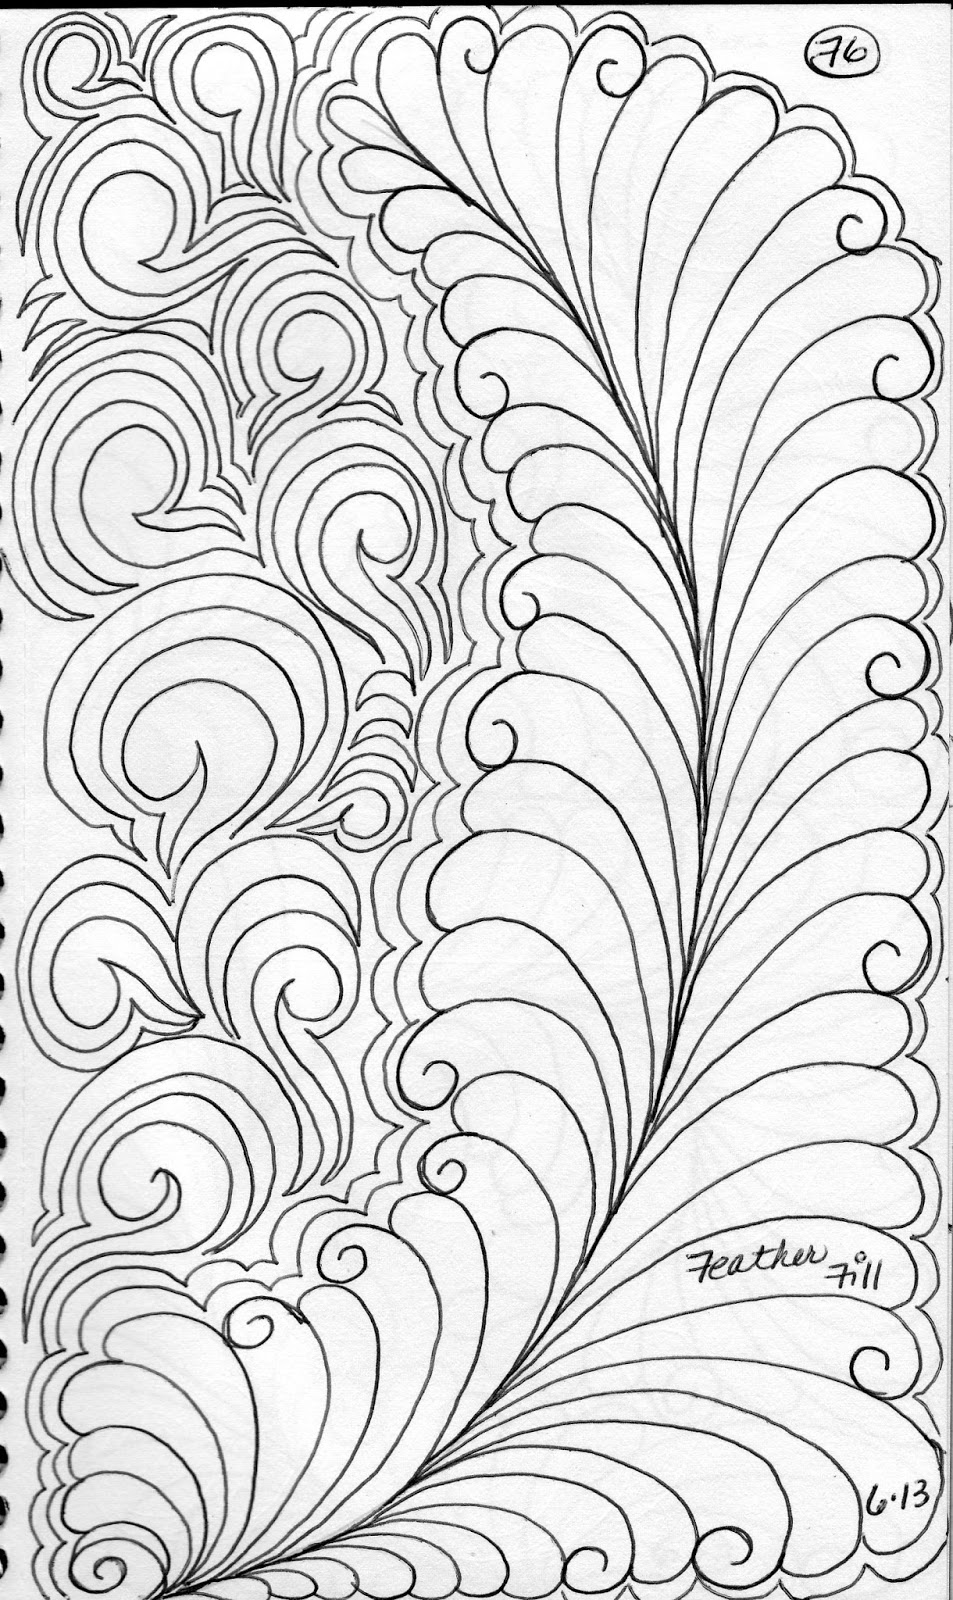 luann kessi  quilting sketch book